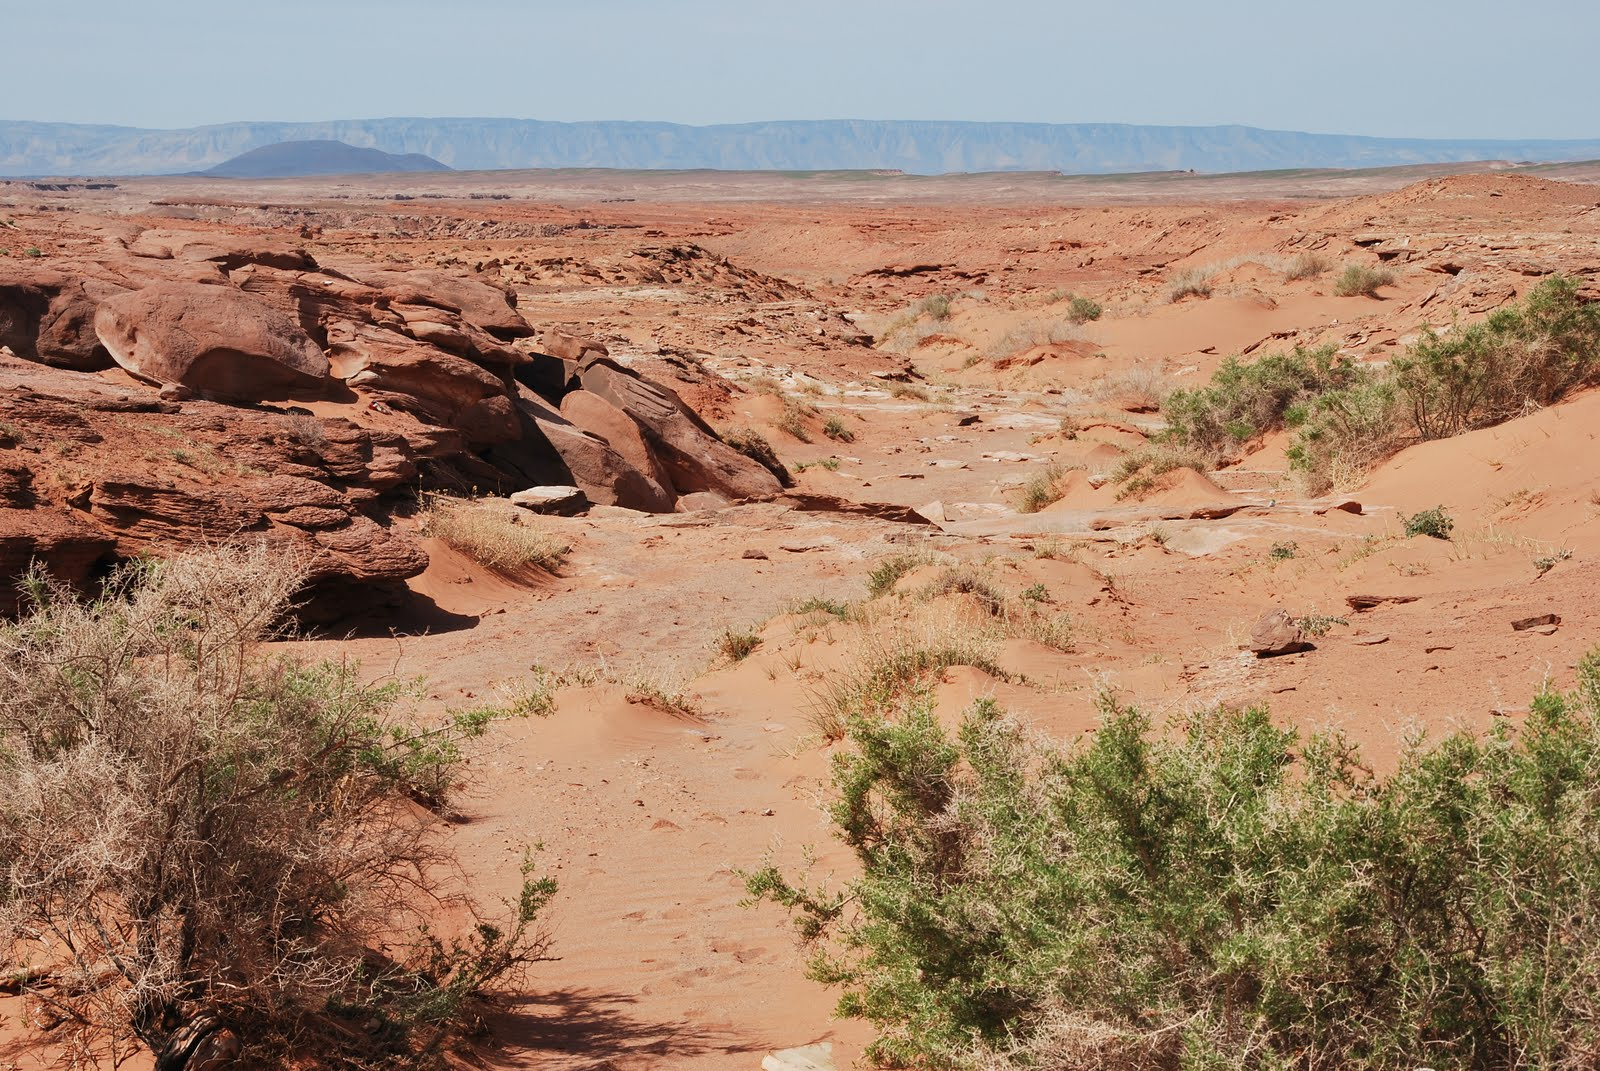 bend oregon daily photo a few weeks ago while ing the navajo nation my host took me to see the dinosaur tracks near tuba city arizona i had been skeptical from the moment i